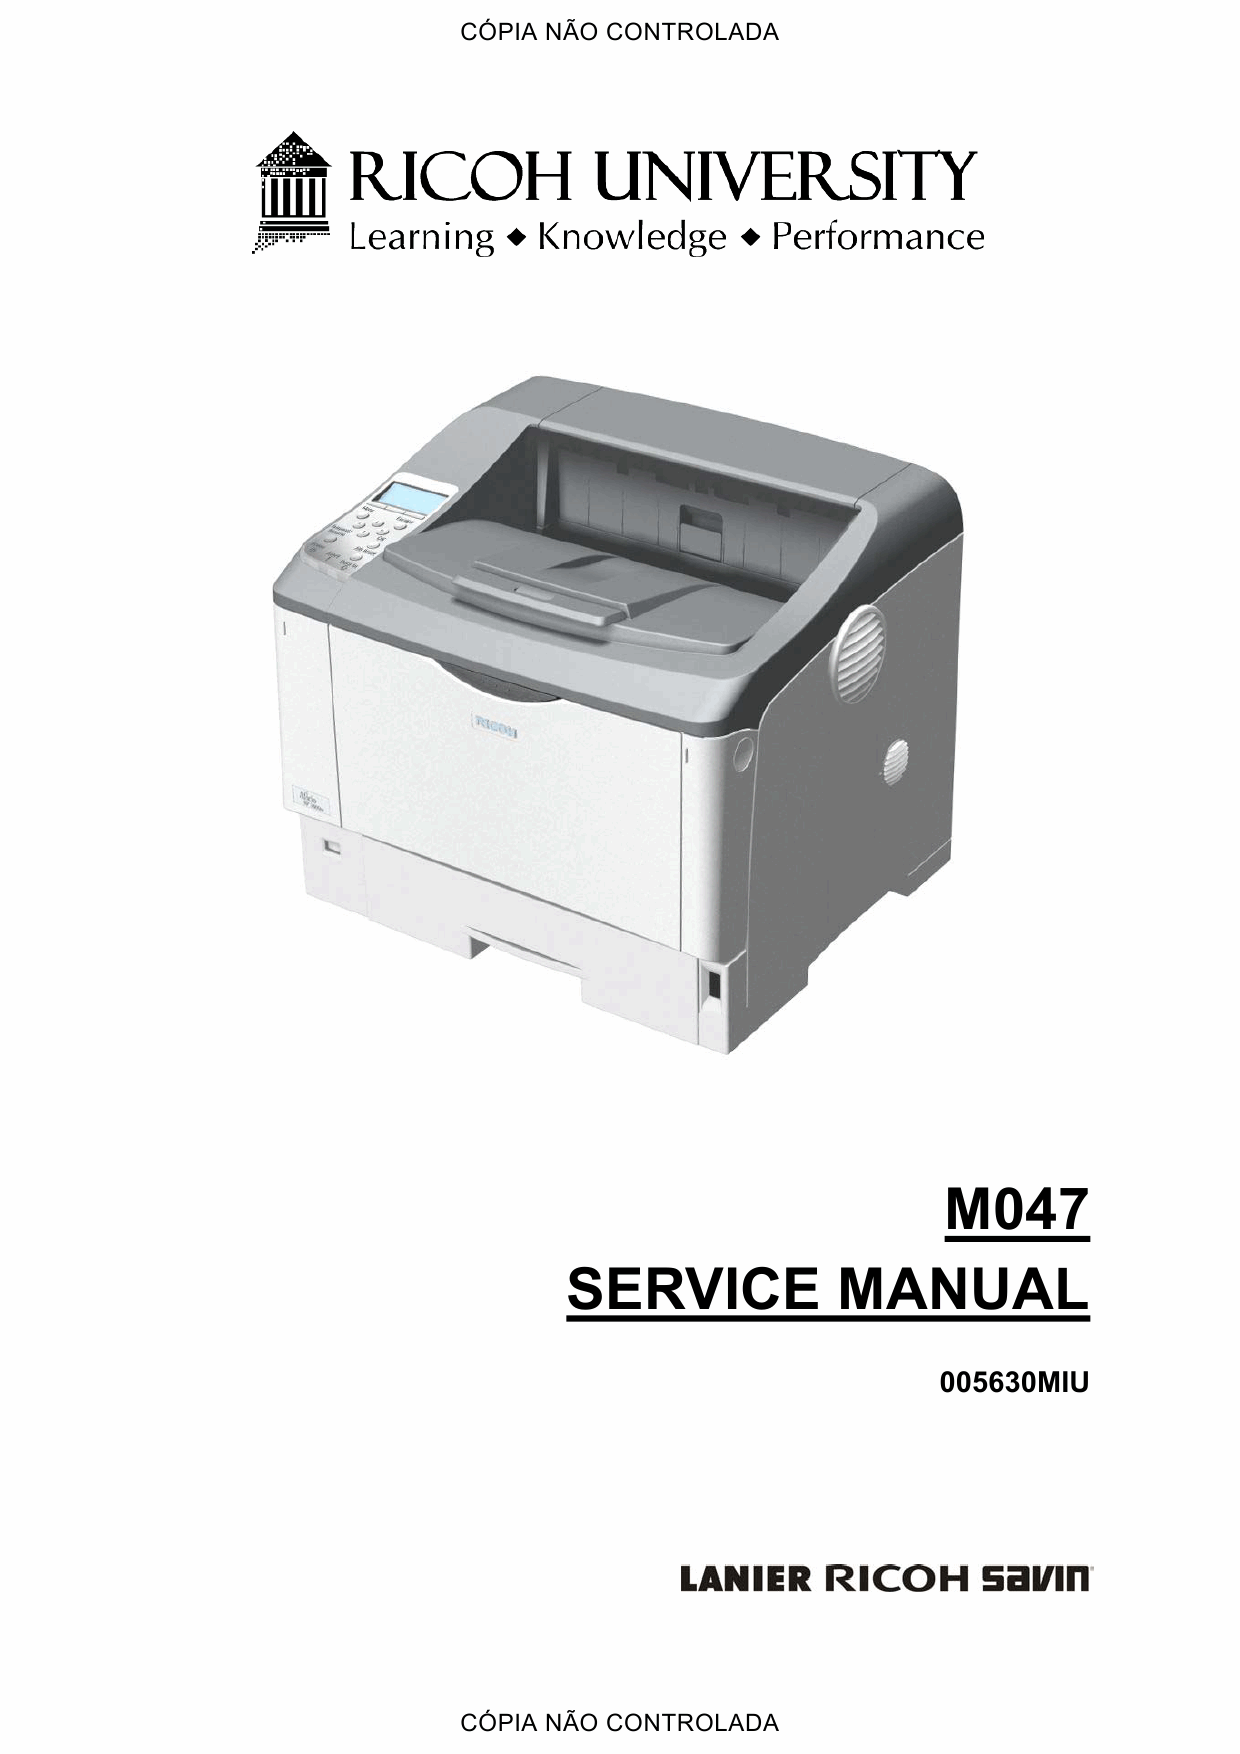 RICOH Aficio SP-6330N M047 Service Manual-1